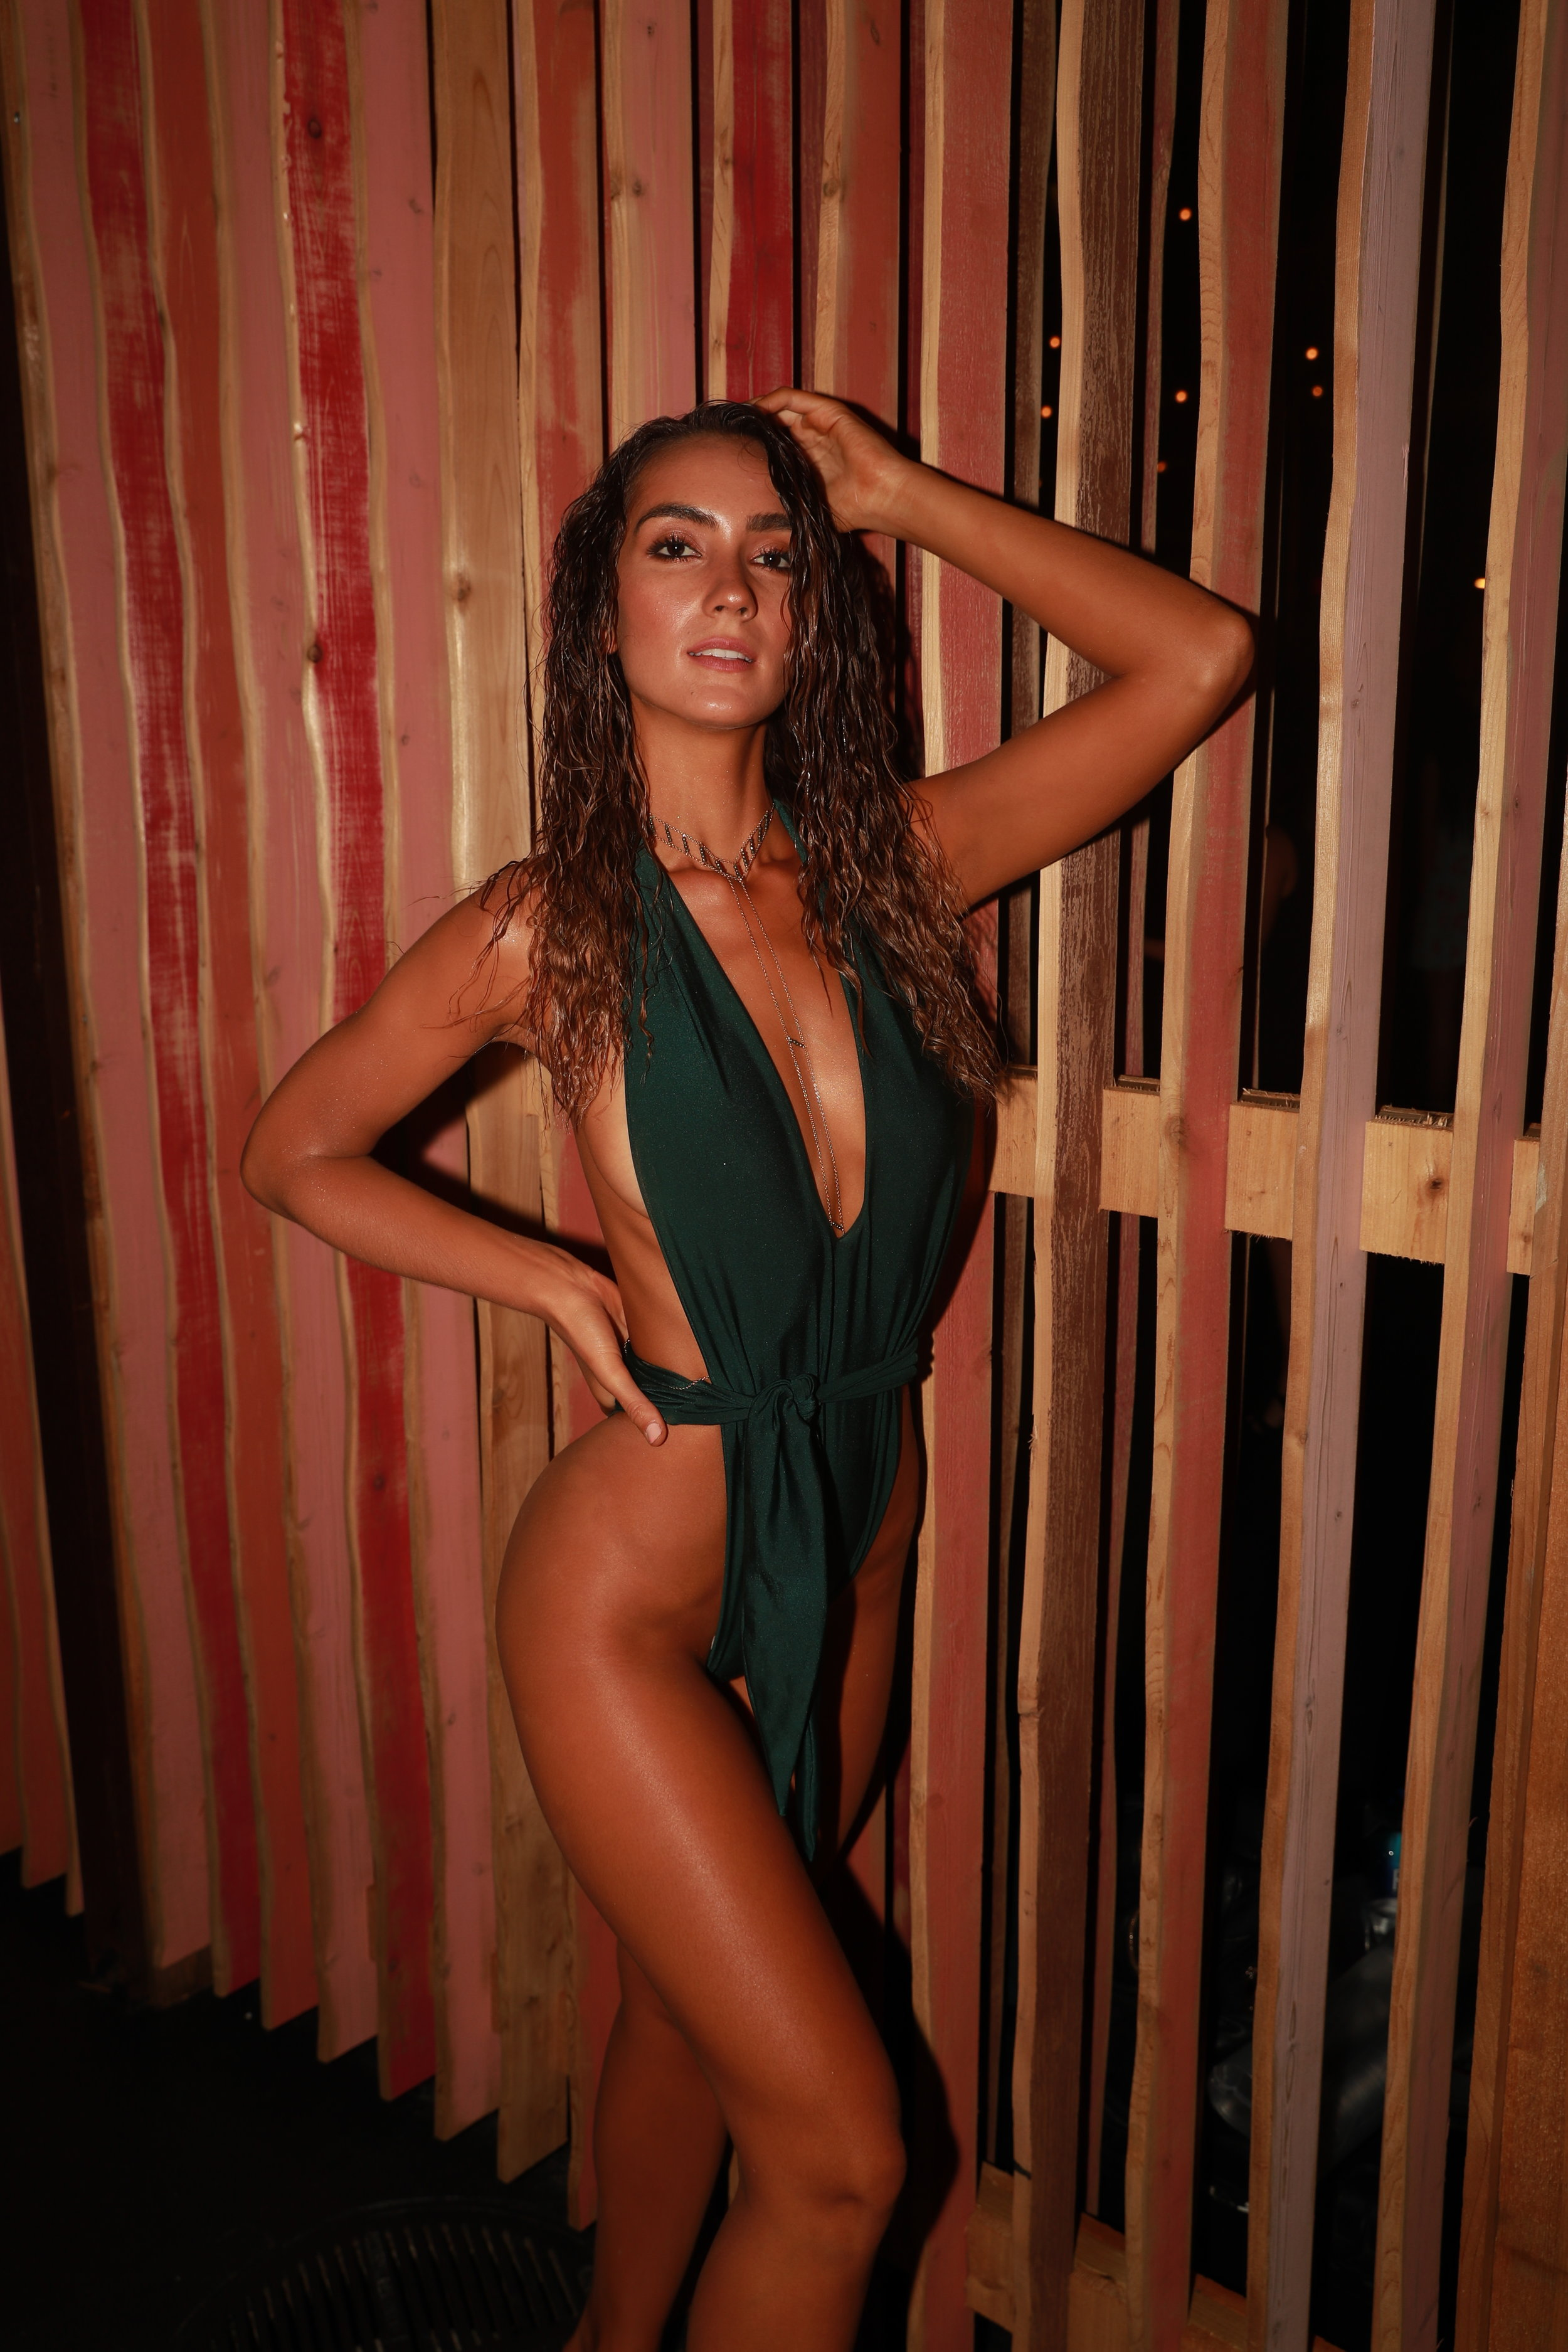 Priscilla Ricart in the Thunder one piece in Amazon - Click image to shop look